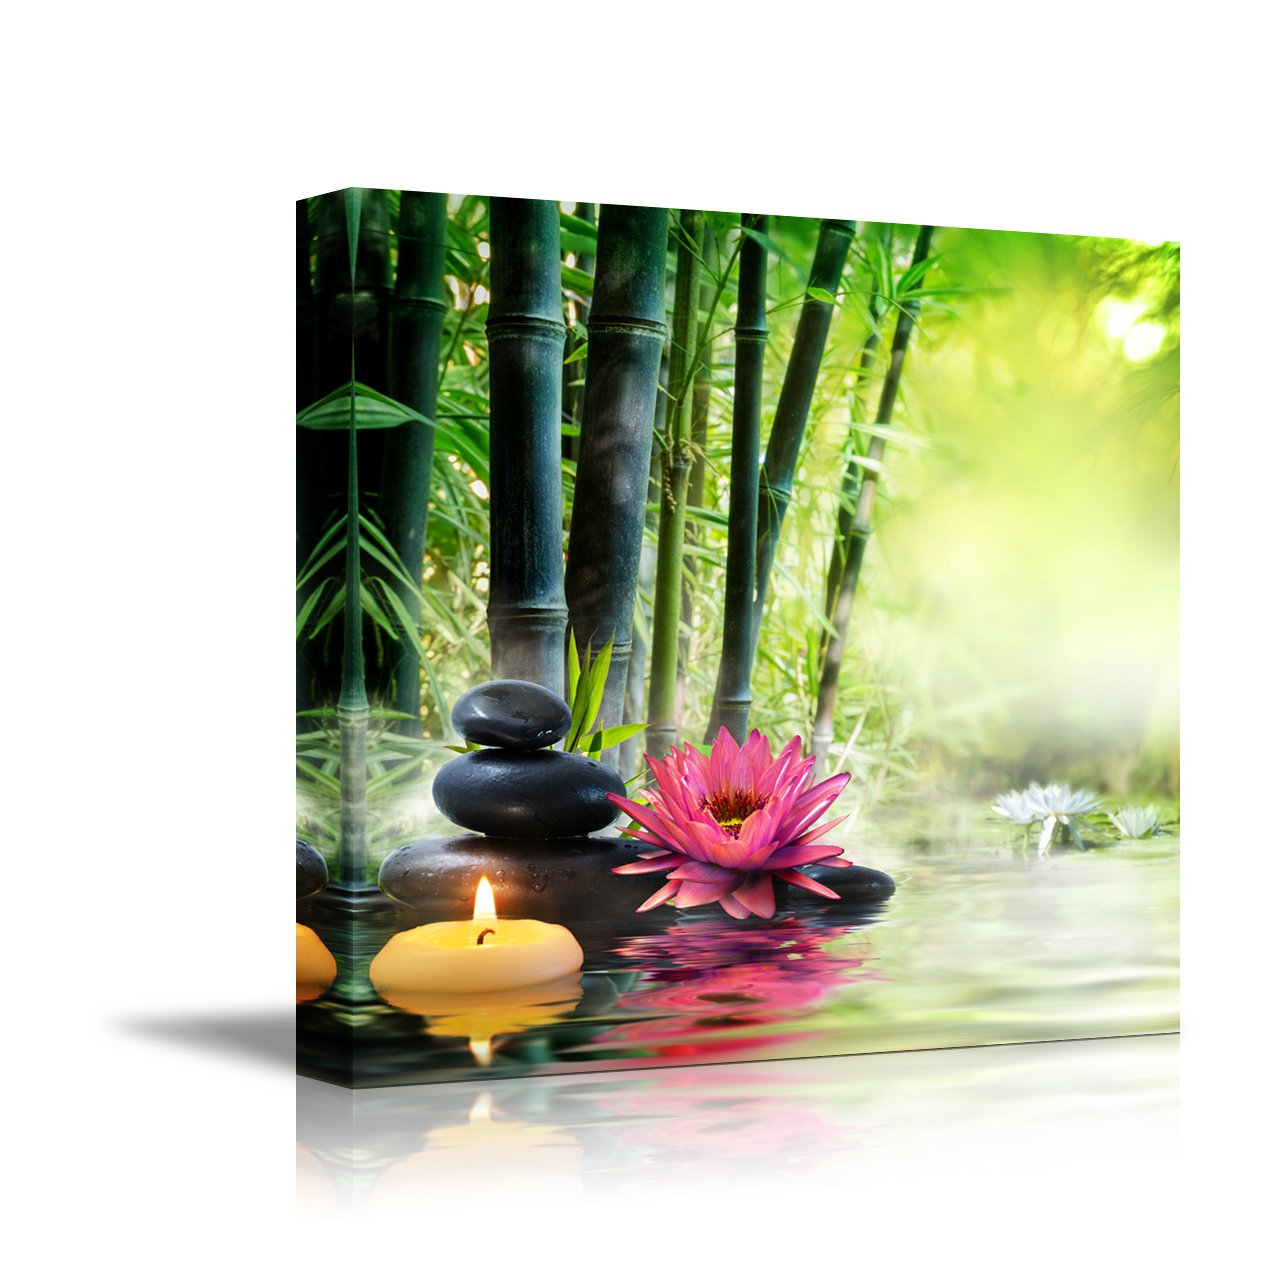 Wall26 art prints framed art canvas prints greeting canvas wall art massage in nature lily stones bamboo zen concept modern home decor canvas prints giclee printing wrapped ready to hang 24 x amipublicfo Images